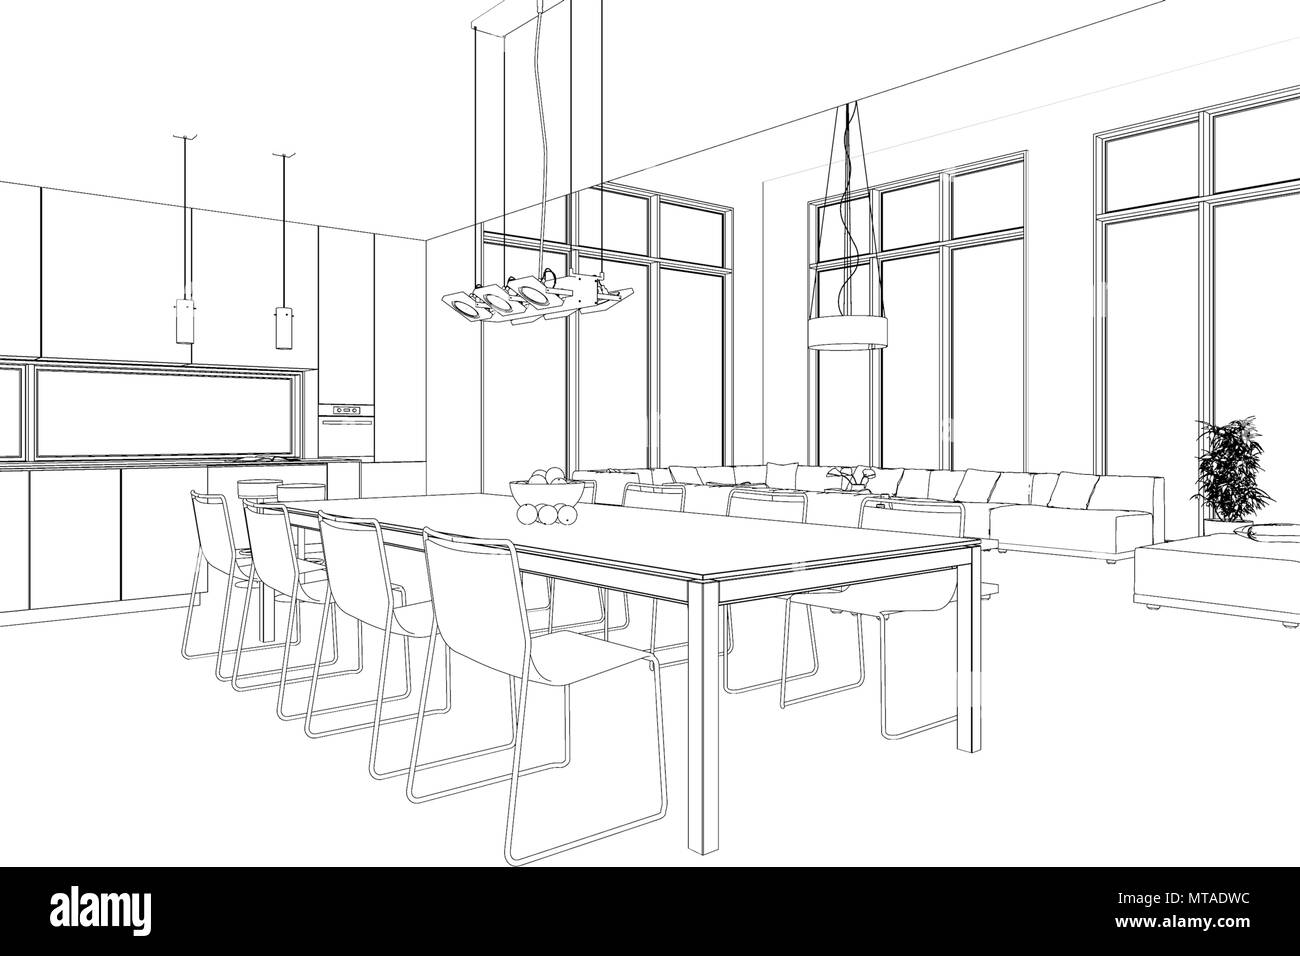 Interior Design Modern Loft Dining Room Custom Drawing Stock Photo